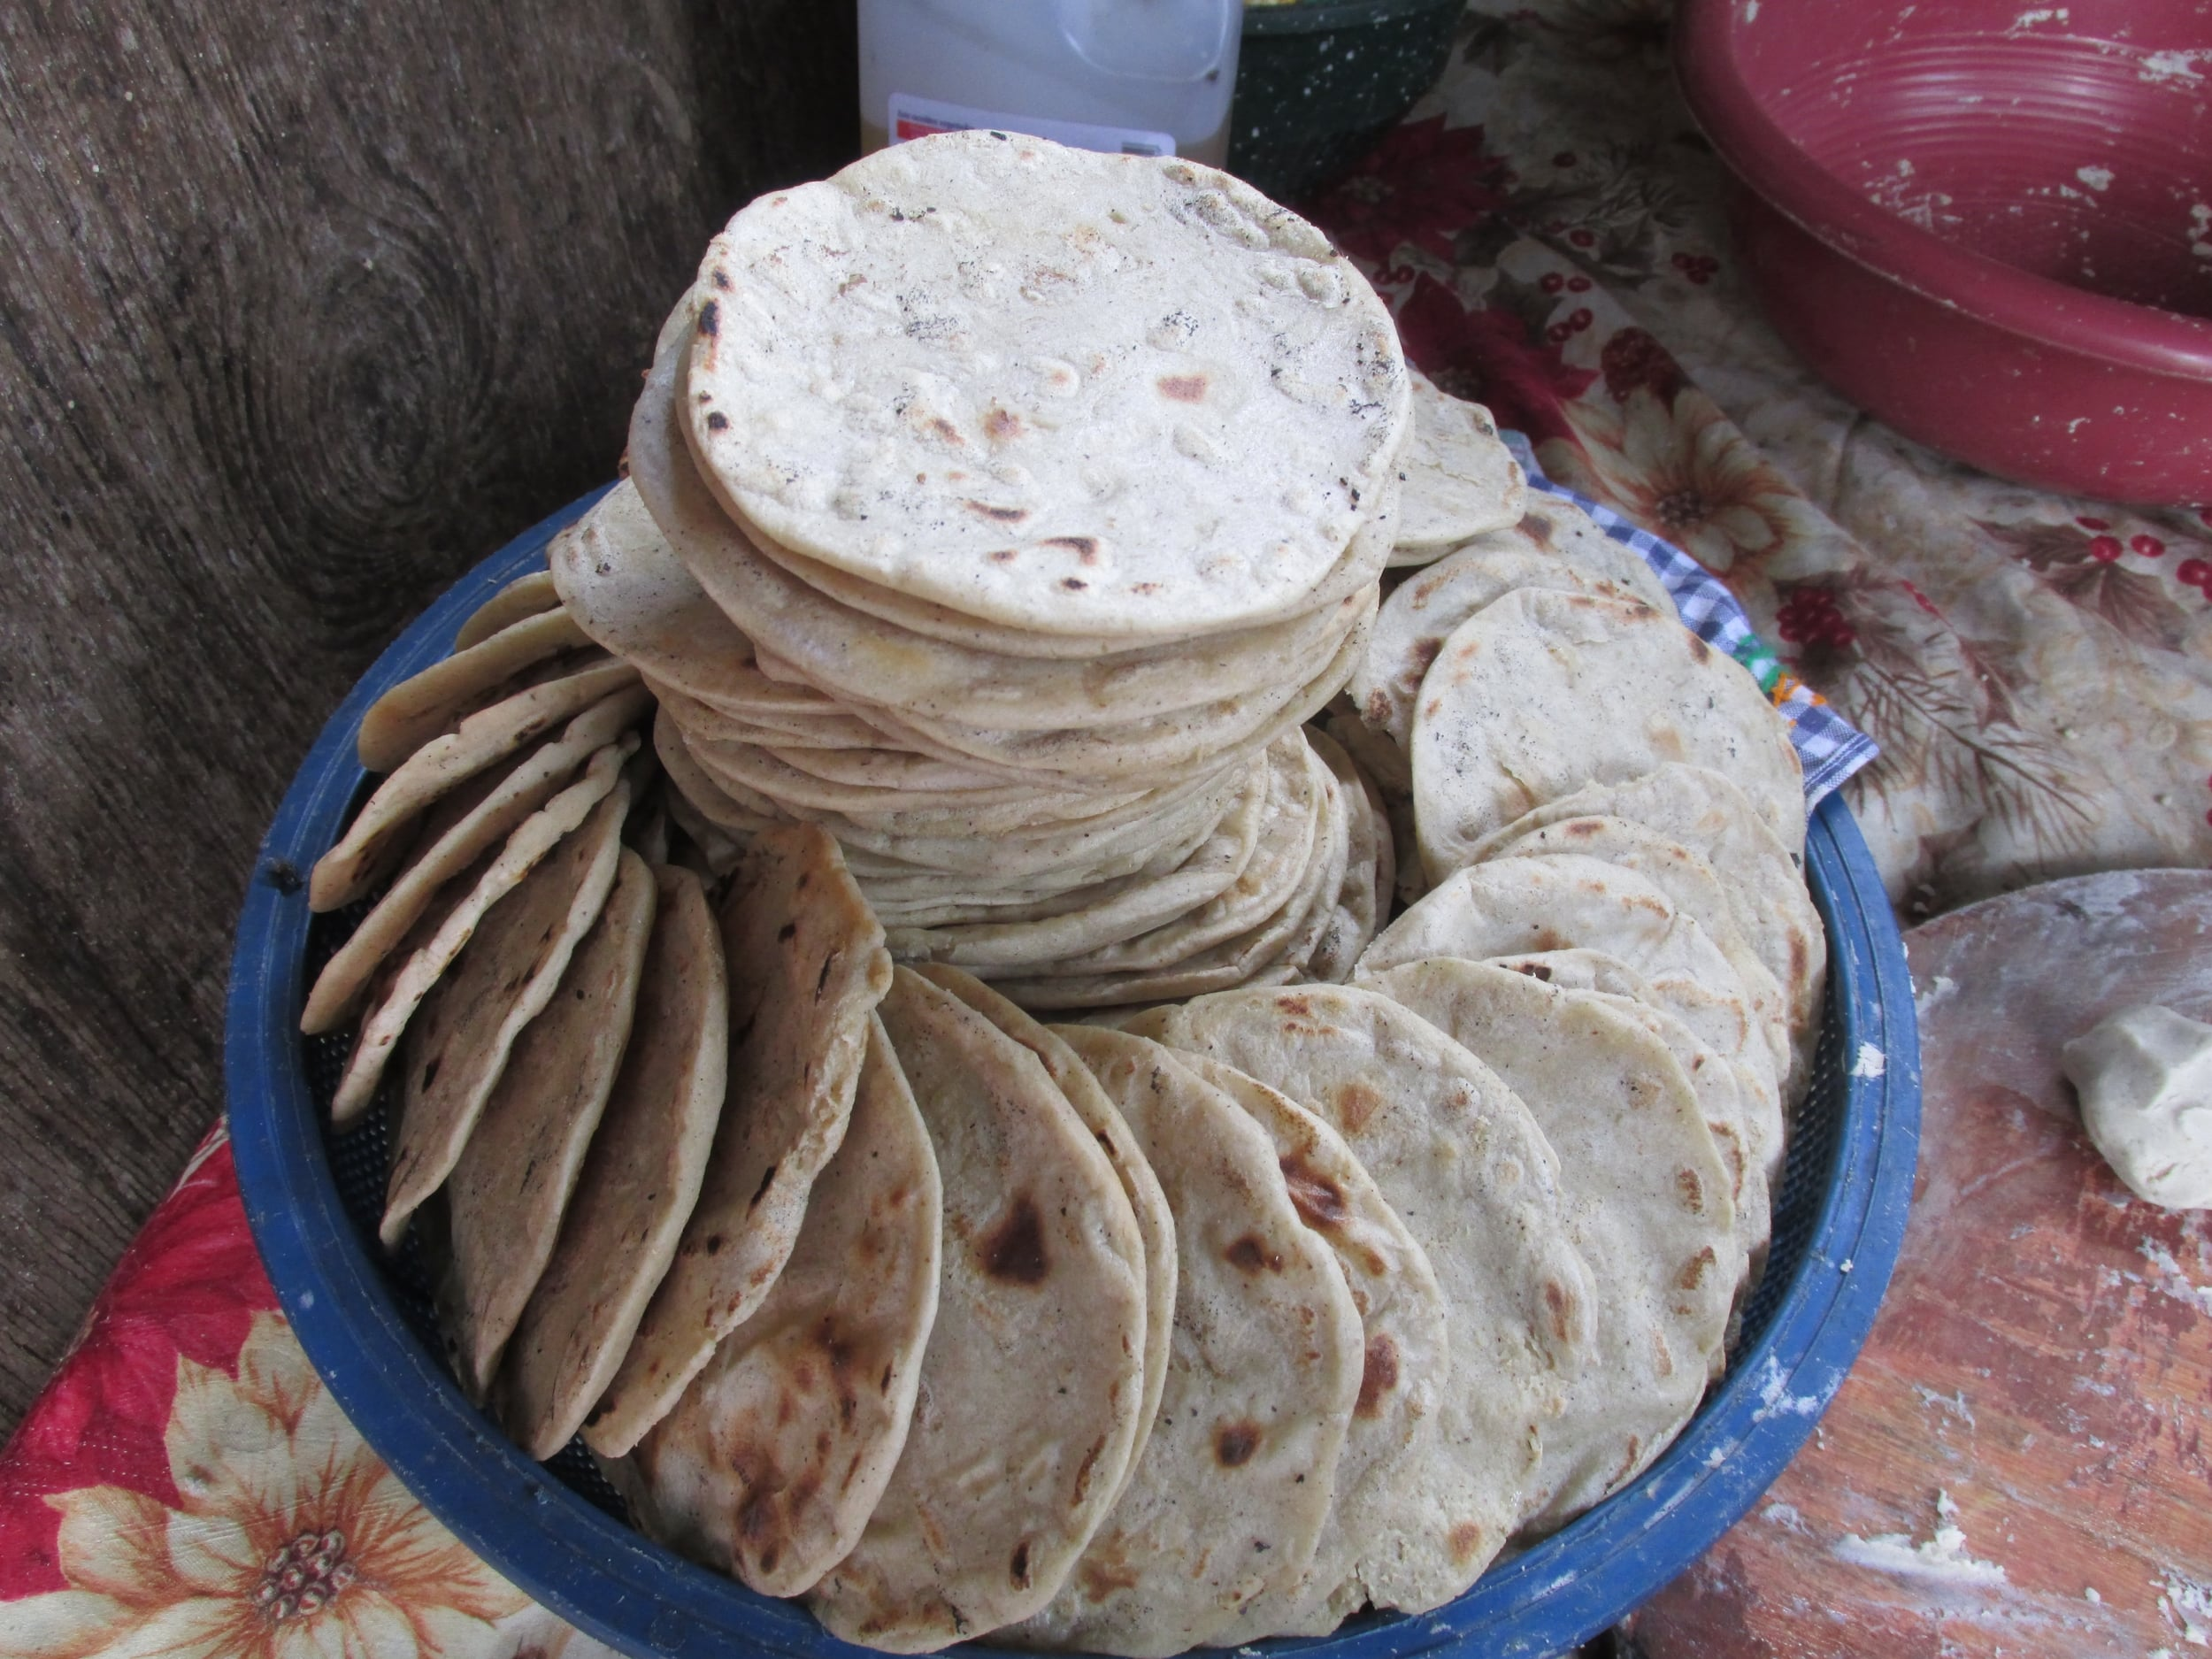 This is just the start of the giant bowl of tortillas they make every other day.